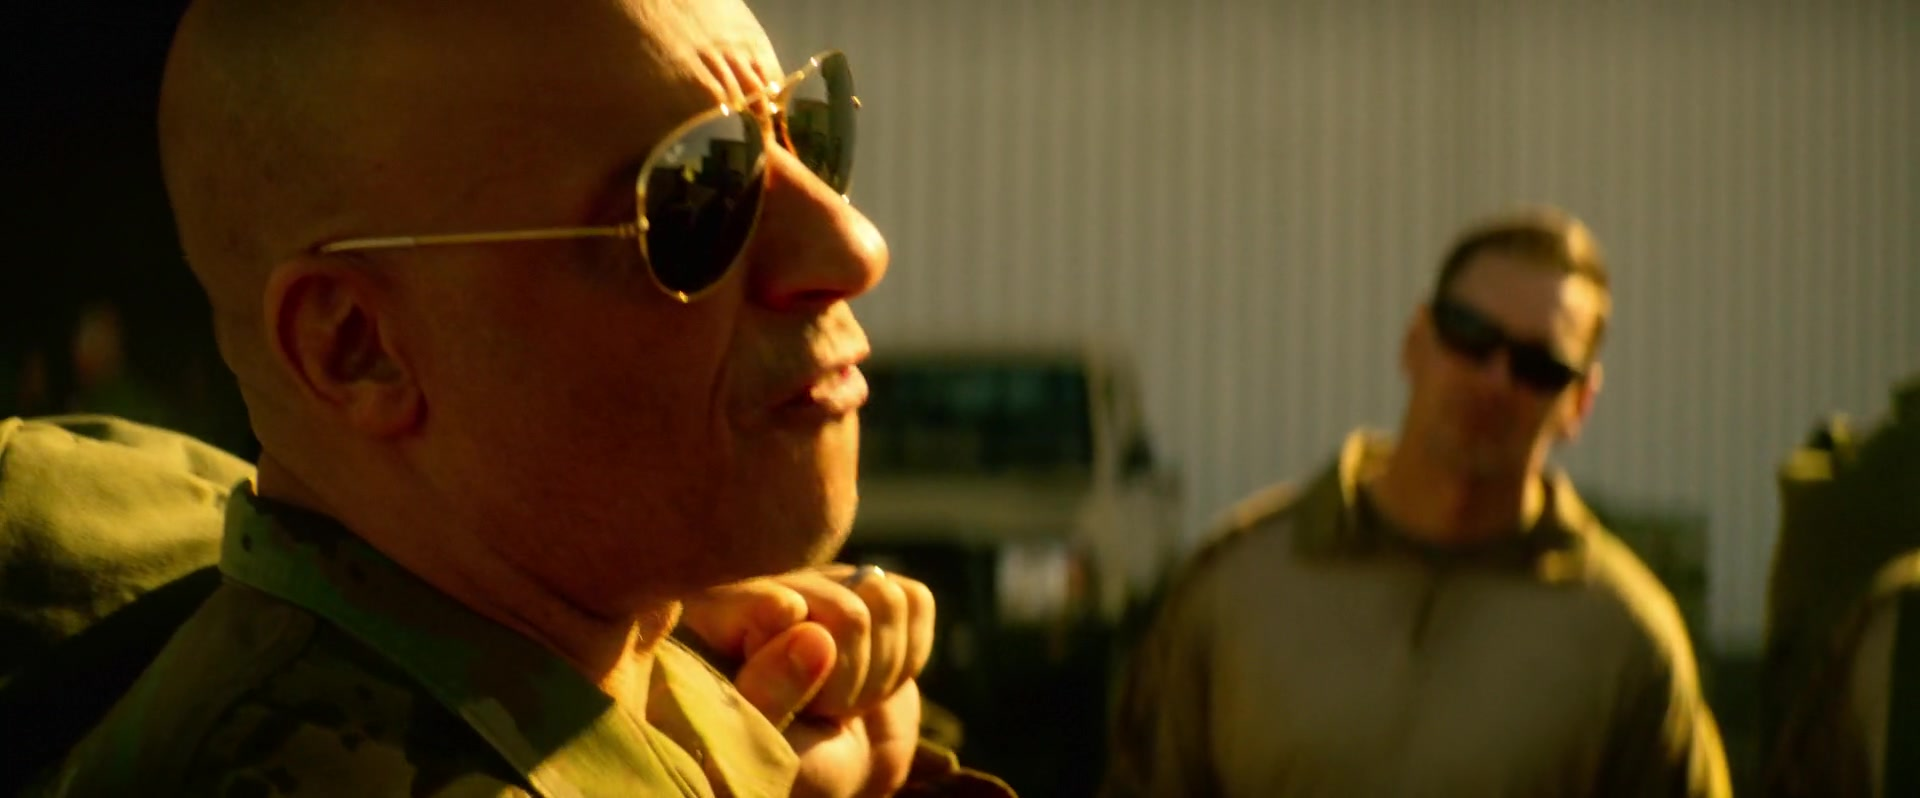 Ray-Ban Aviator Sunglasses Worn by Vin Diesel as Ray ...